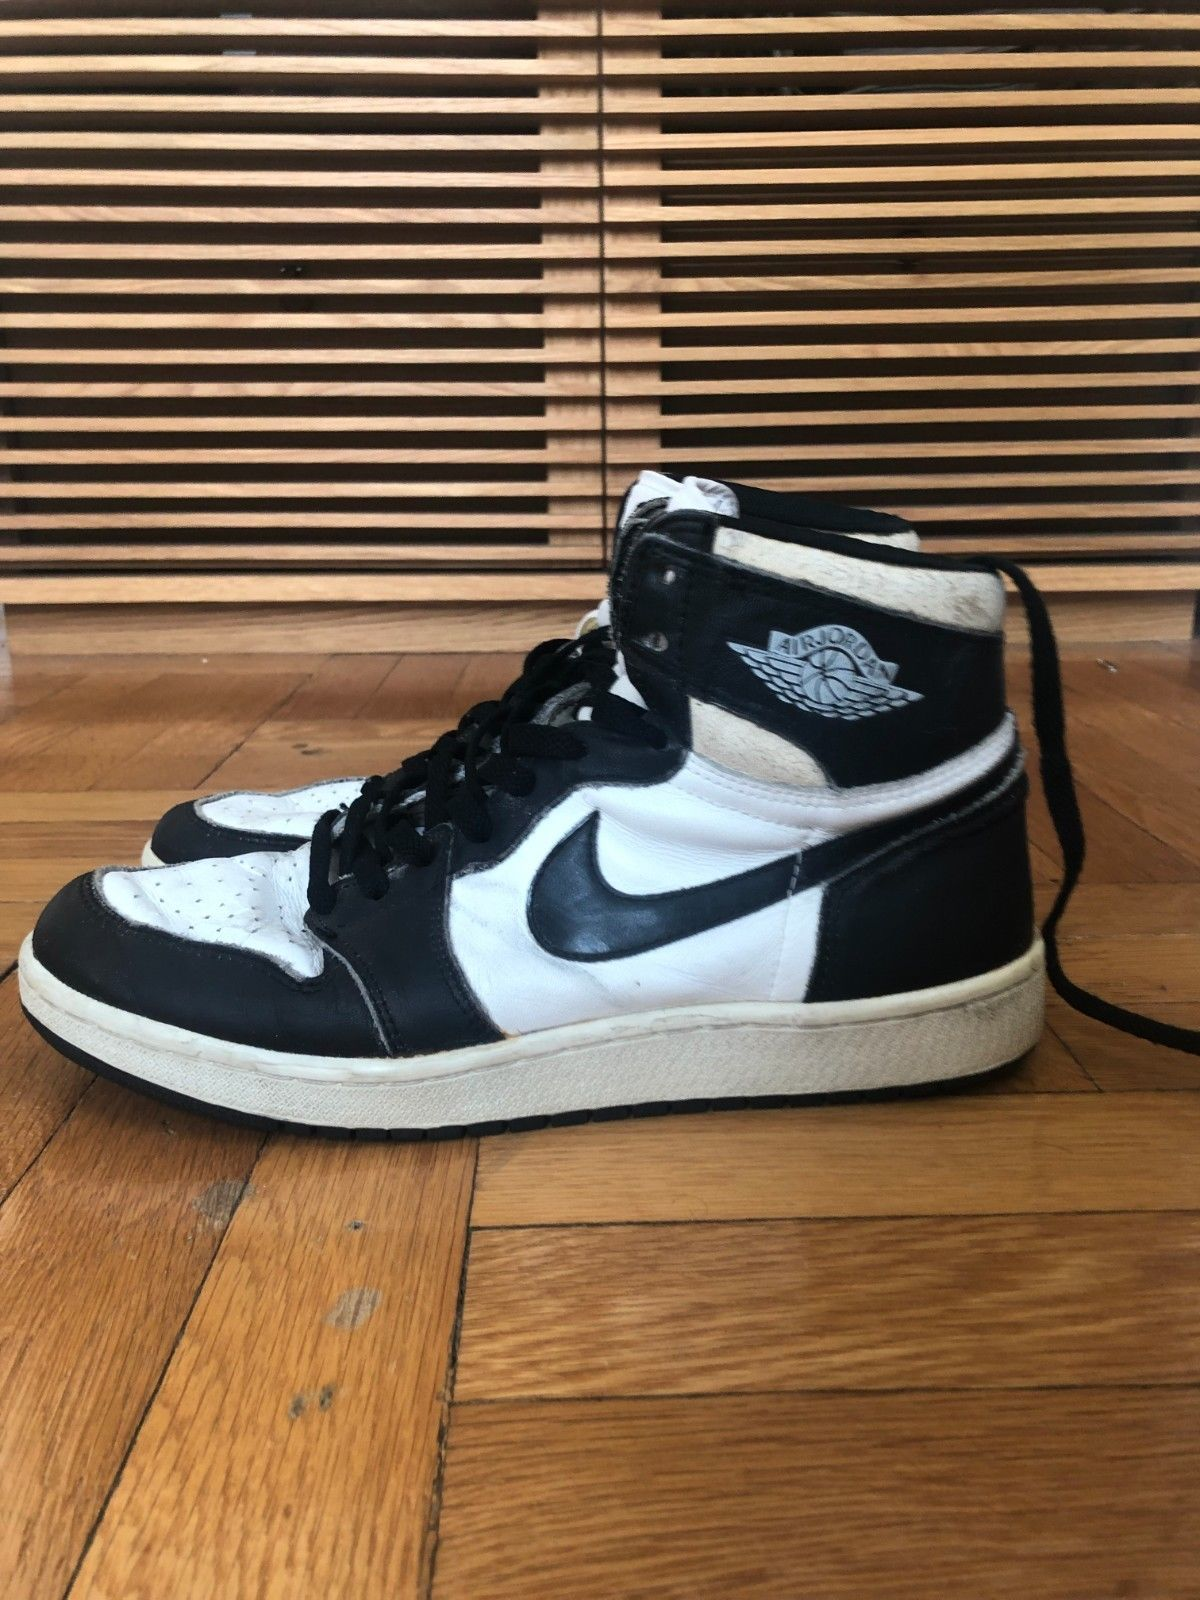 purchase cheap ac4b8 a19a3 Nike Air Jordan 1 White  Black 1985 Size 11 OG Vintage